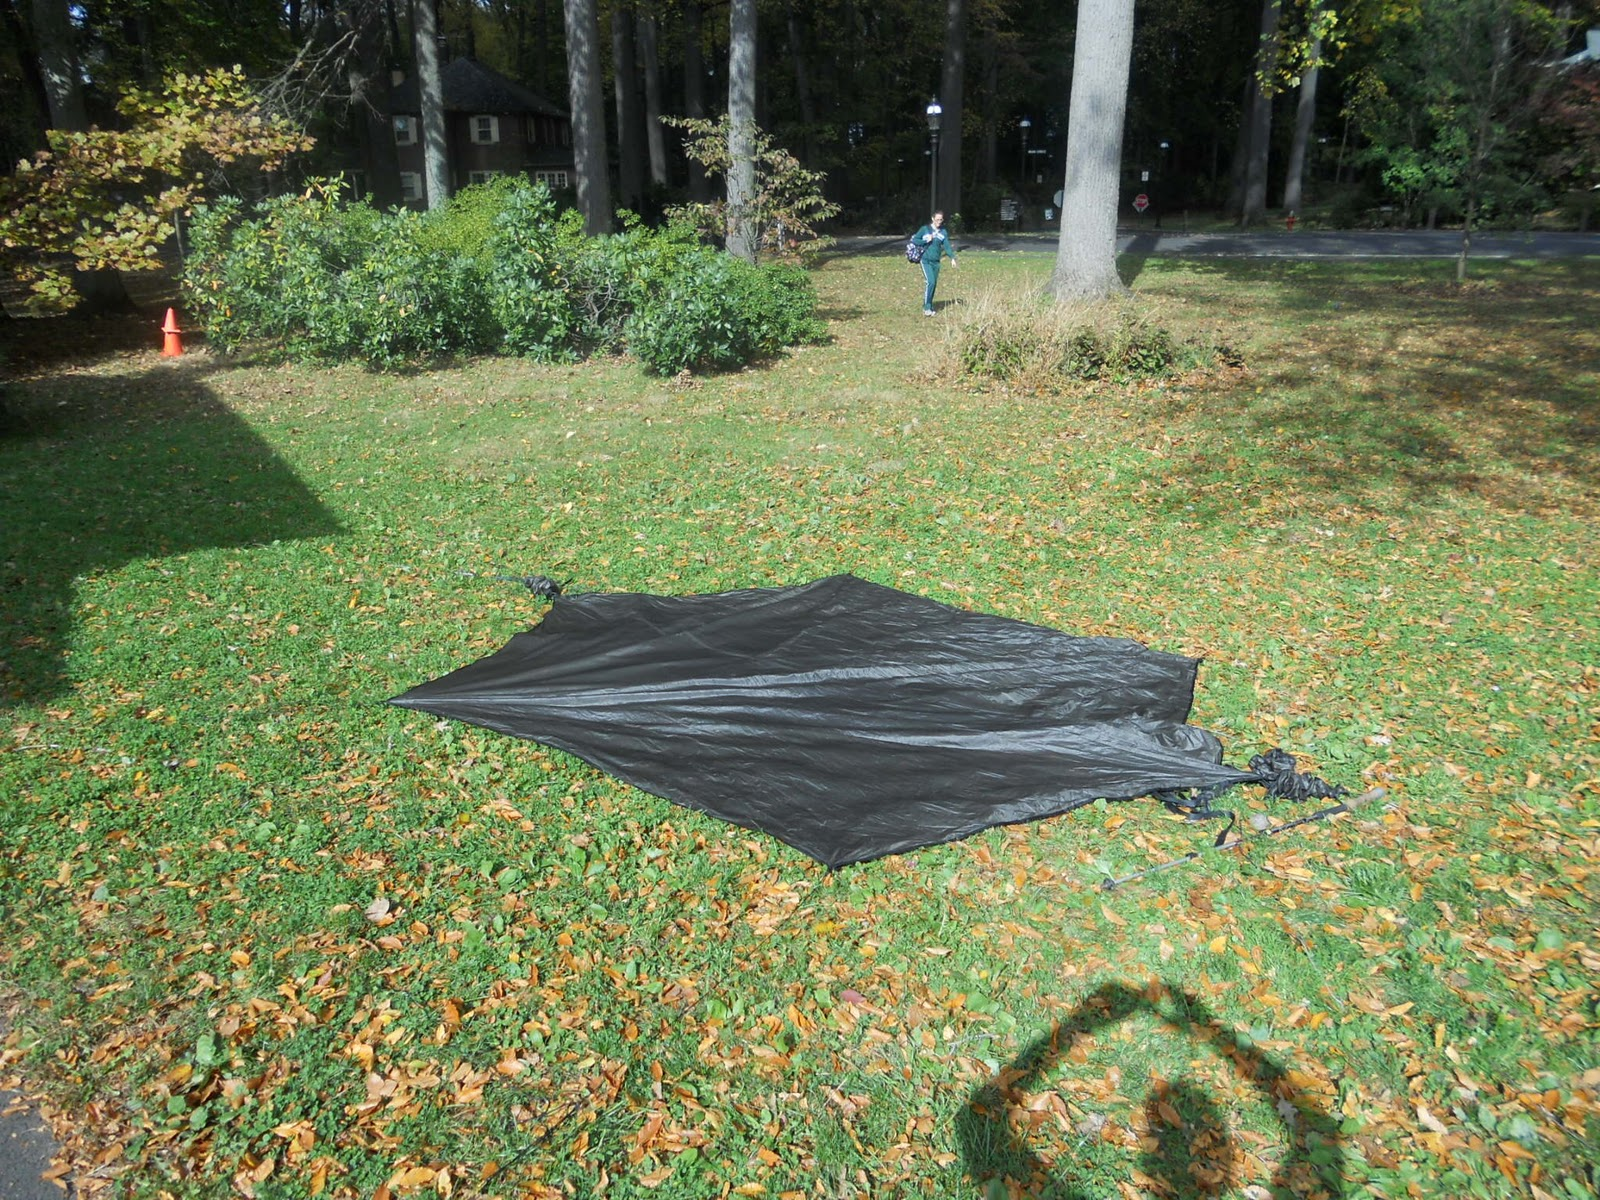 Using Prussik Knots secure the guylines to the tent stakes. You can make these fairly taunt but still leave a little slack in the line. & Setting Up a Hennessy Hammock as a Tent | We Walk Softly